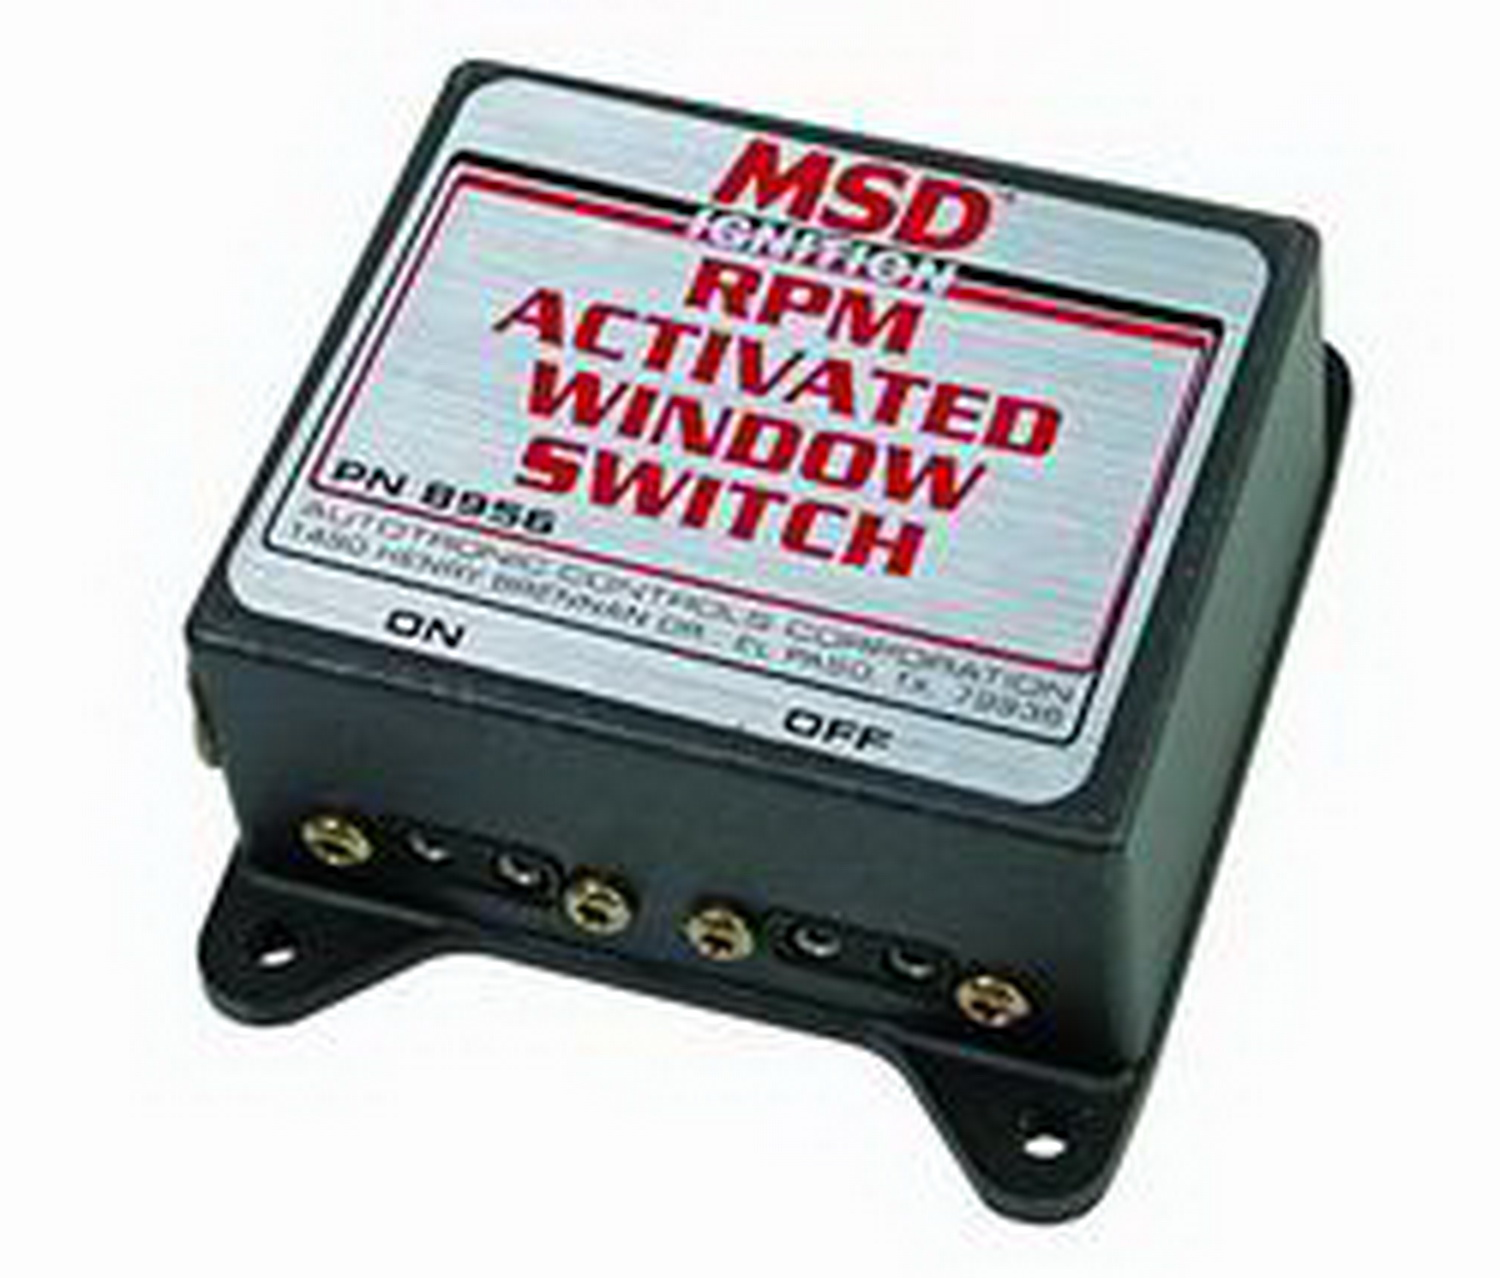 MSD Performance 8956 Window, RPM Activated Switch, MSD